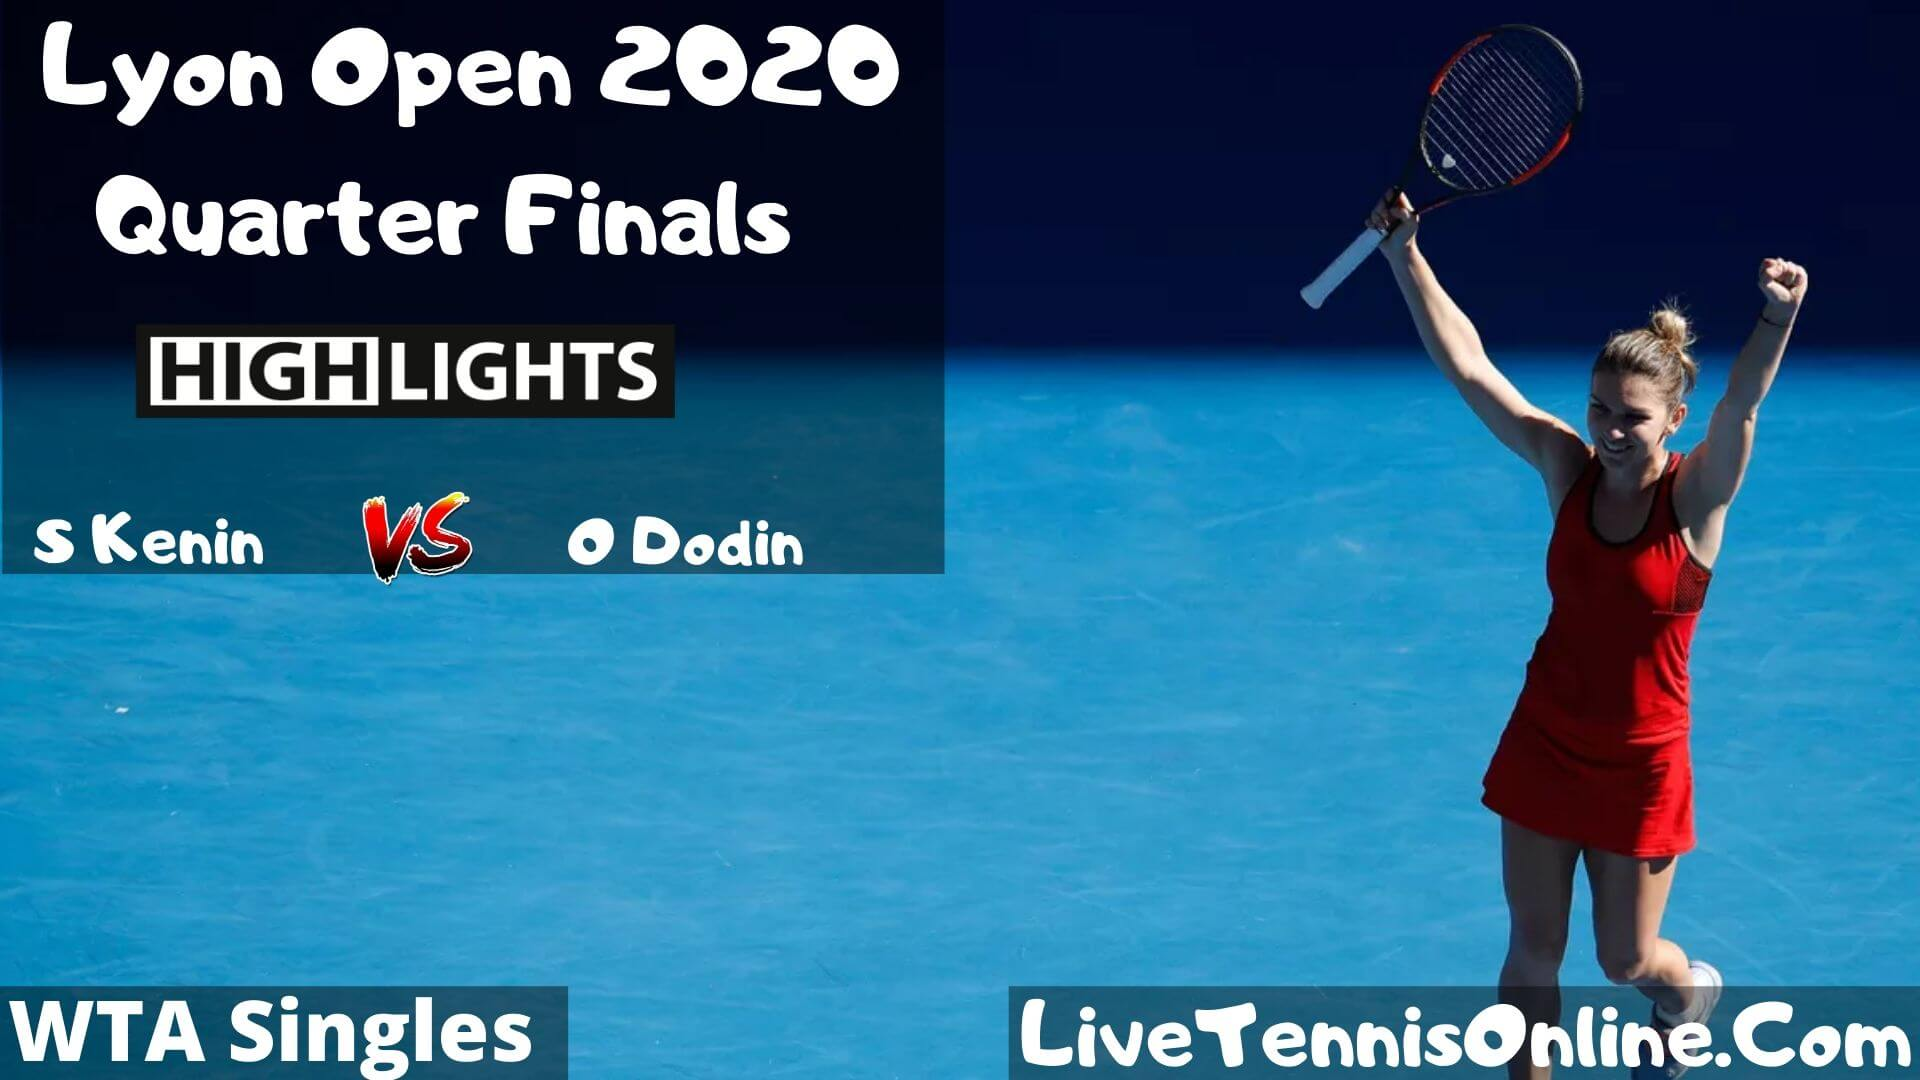 S Kenin Vs O Dodin Highlights 2020 QF Lyon Open